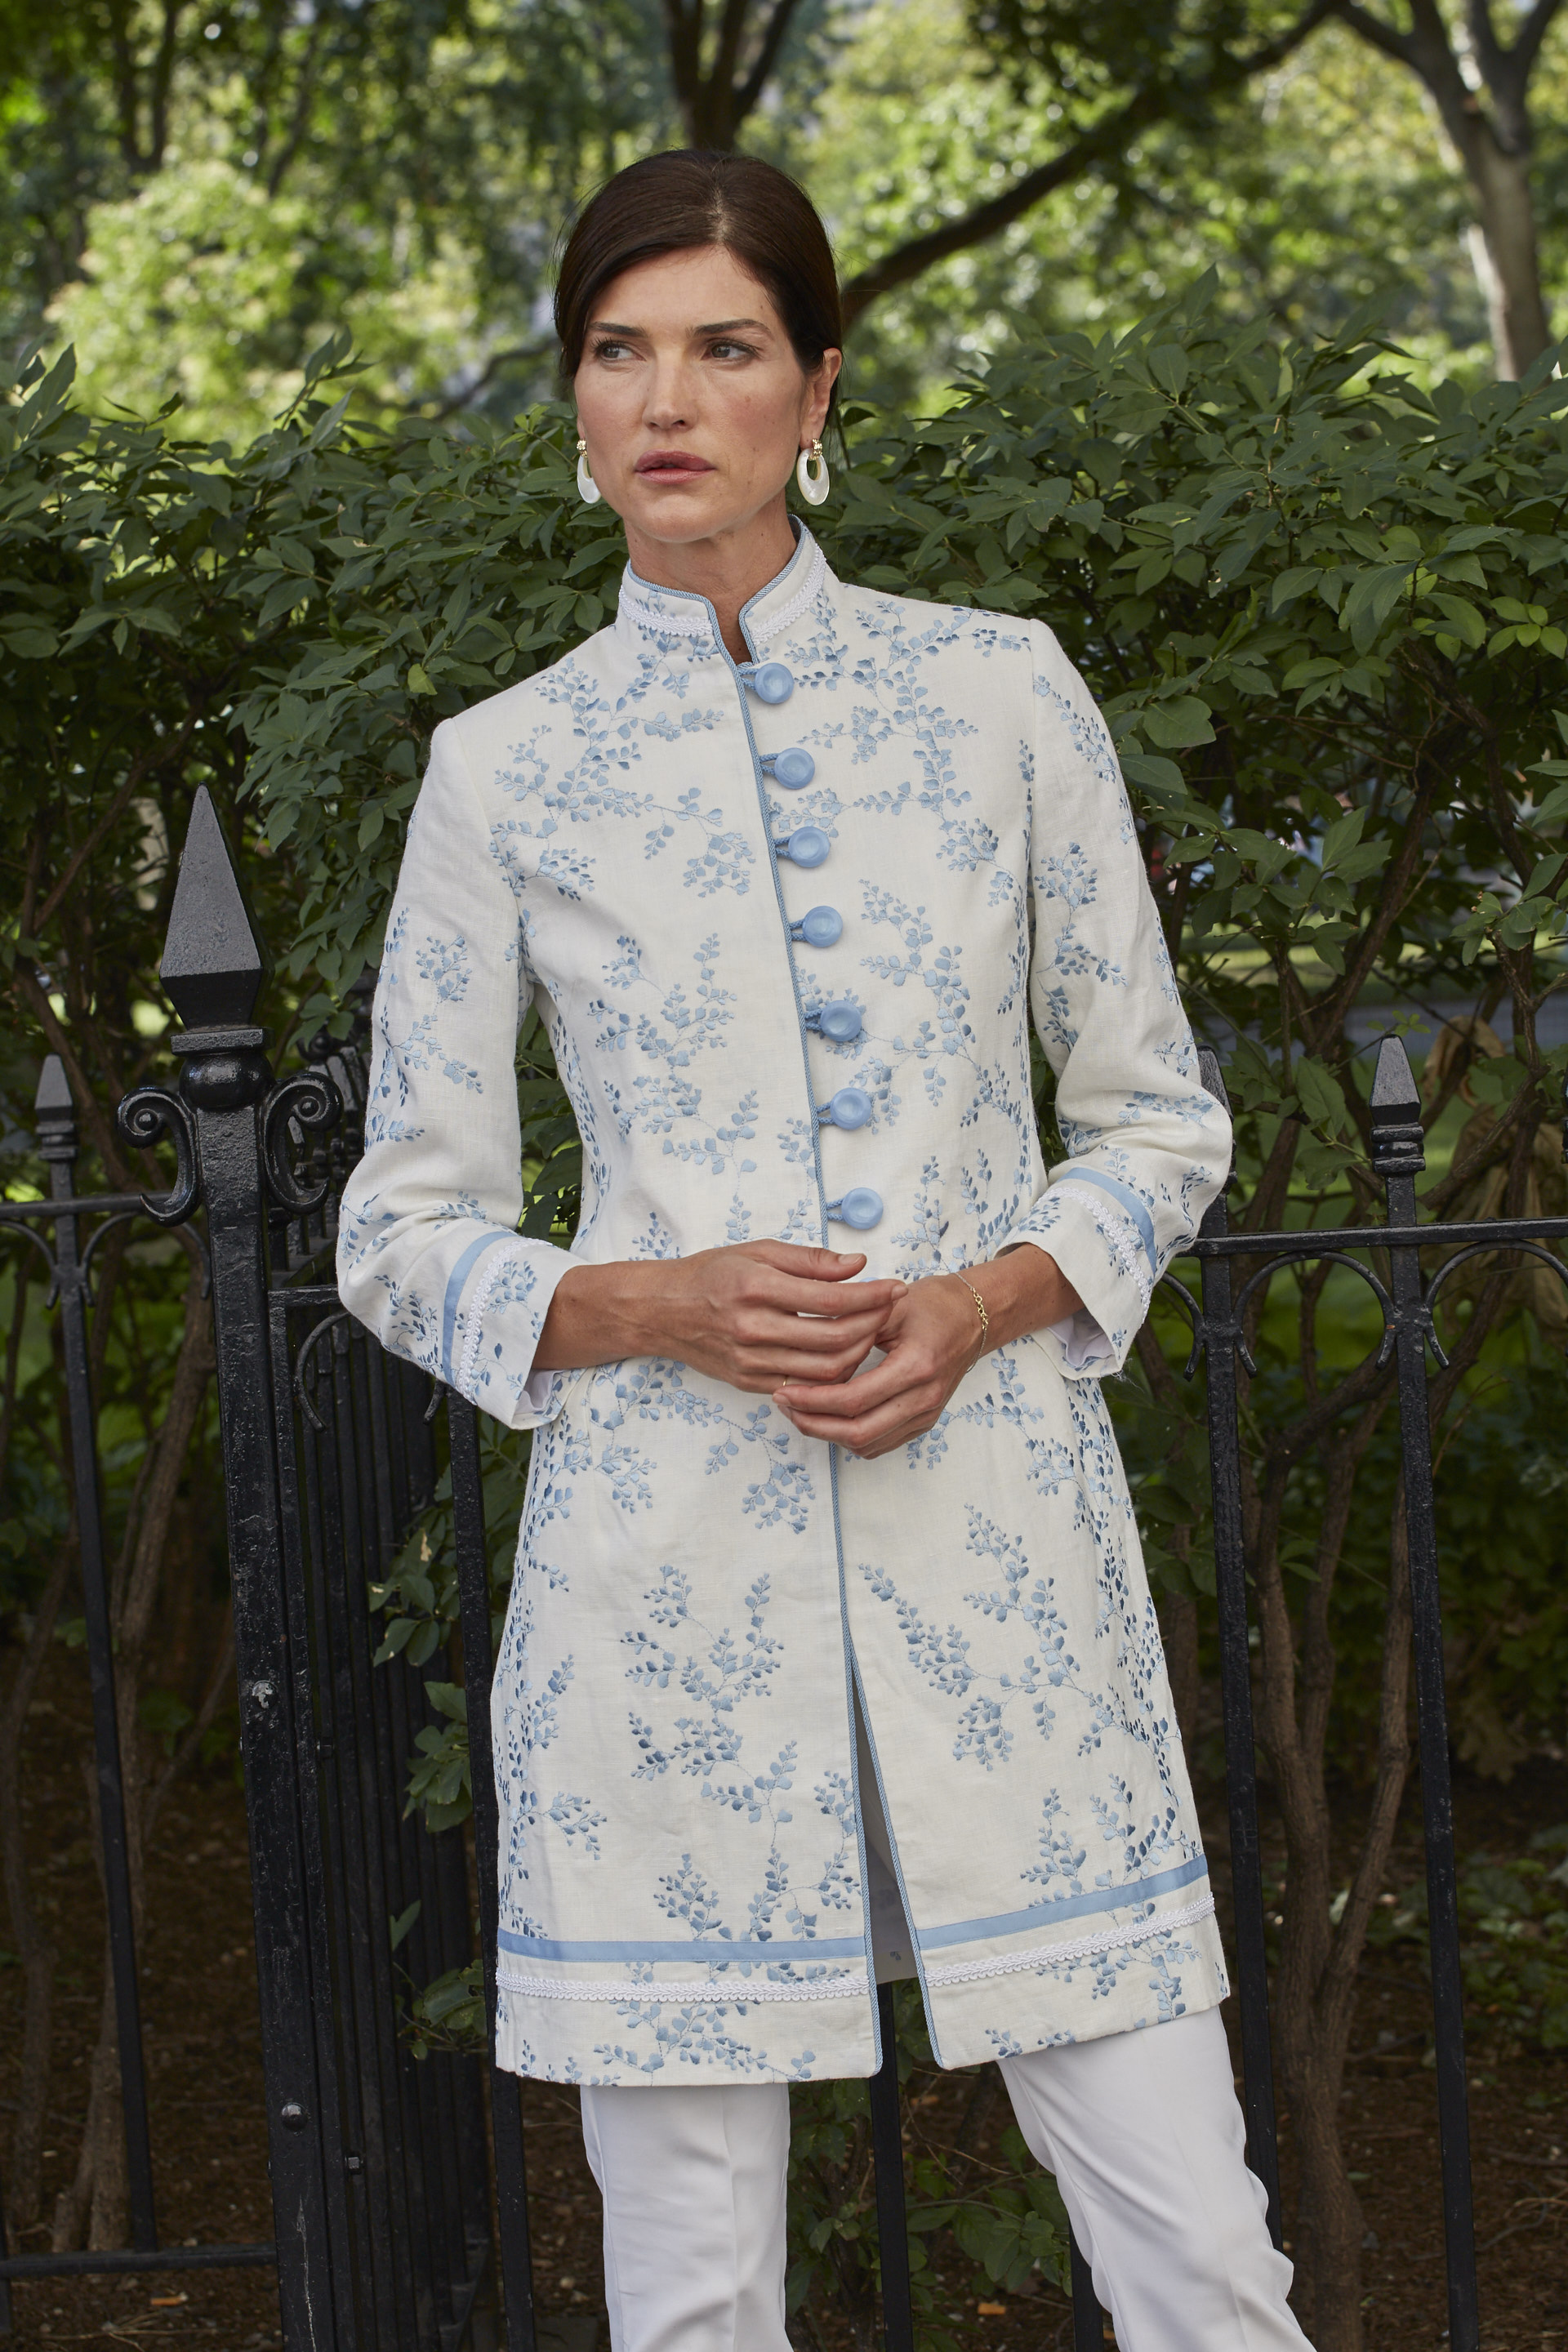 Barga Jacket in Shadow Fern Delft Linen with fashion buttons on a shank. Designer fabric available in 4 colorways (limited supply)  $1470